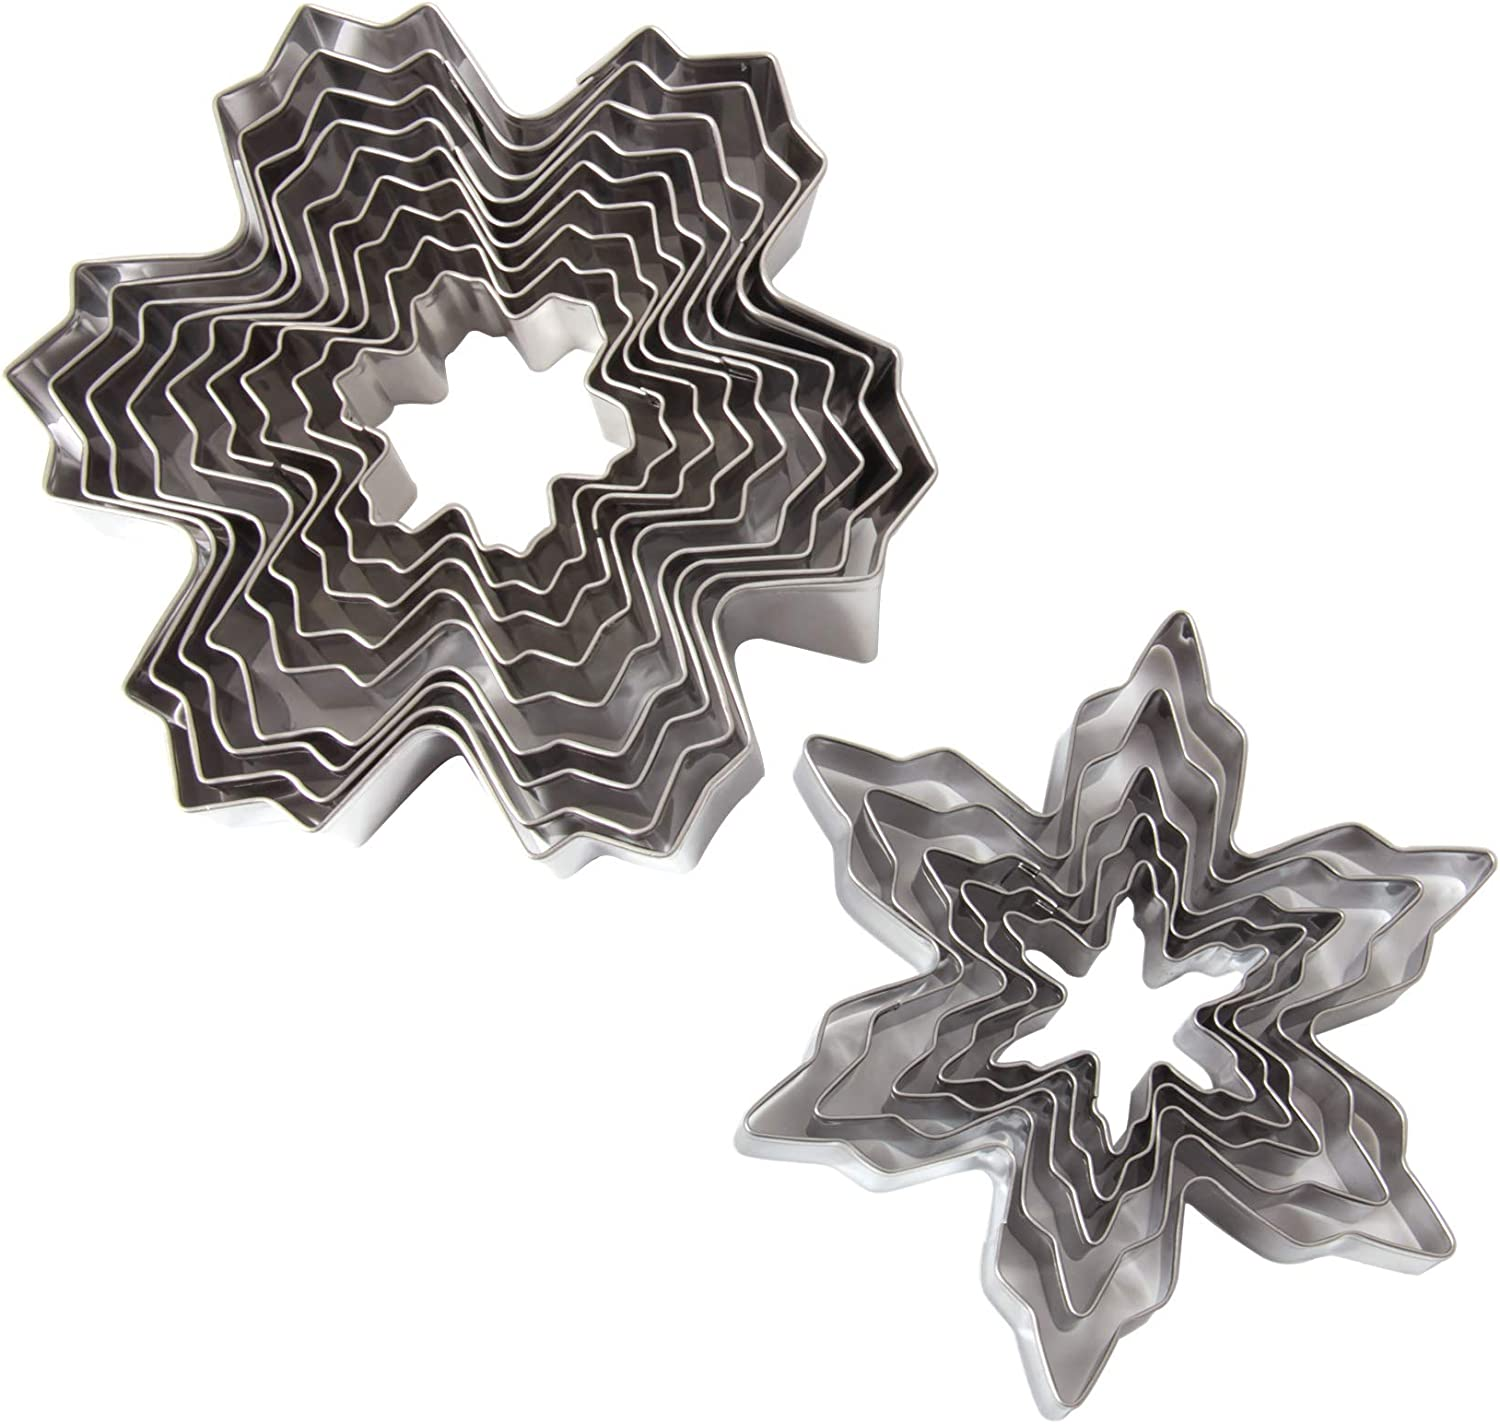 HAPY SHOP Snowflake Cookie Cutters Set 14 PCS Stainless Steel Snowflake Shaped Molds Cake Candy Food Cutters Fondant Decorating Tool for Christmas and Winter Holiday